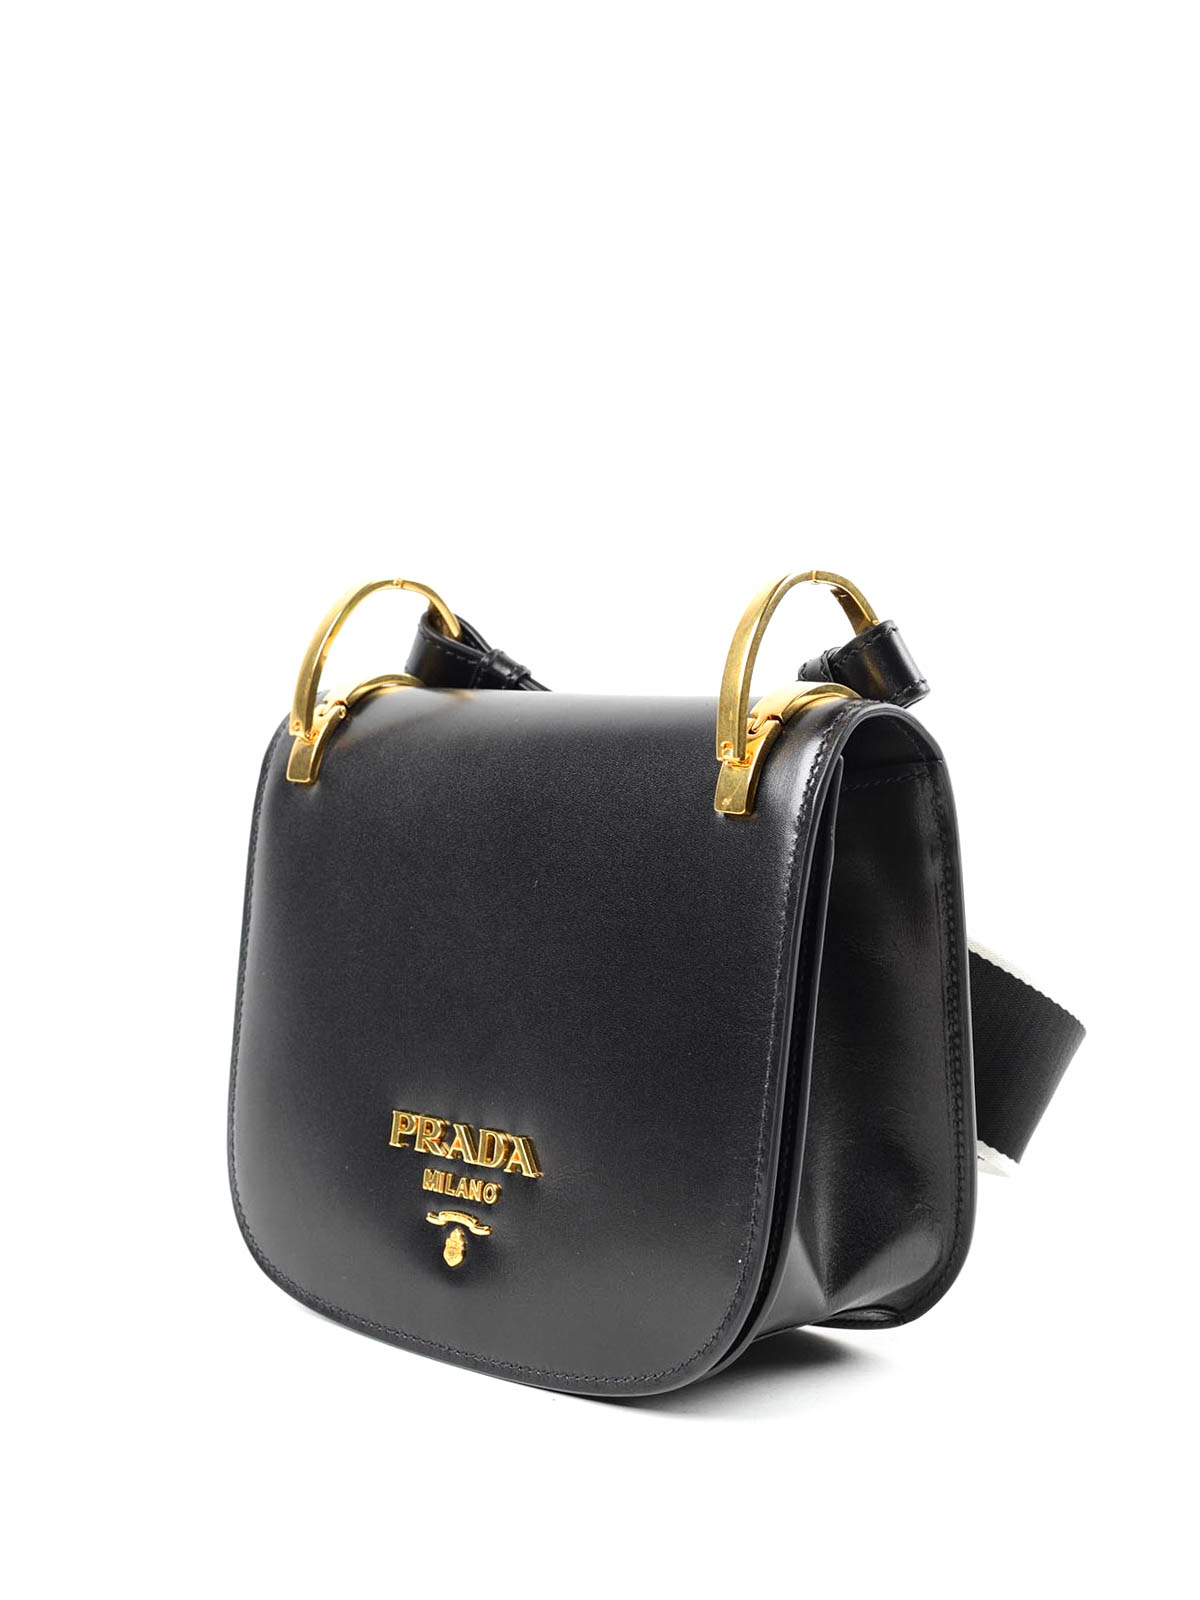 prada wallets for women - Pionni��re leather cross body bag by Prada - cross body bags | iKRIX